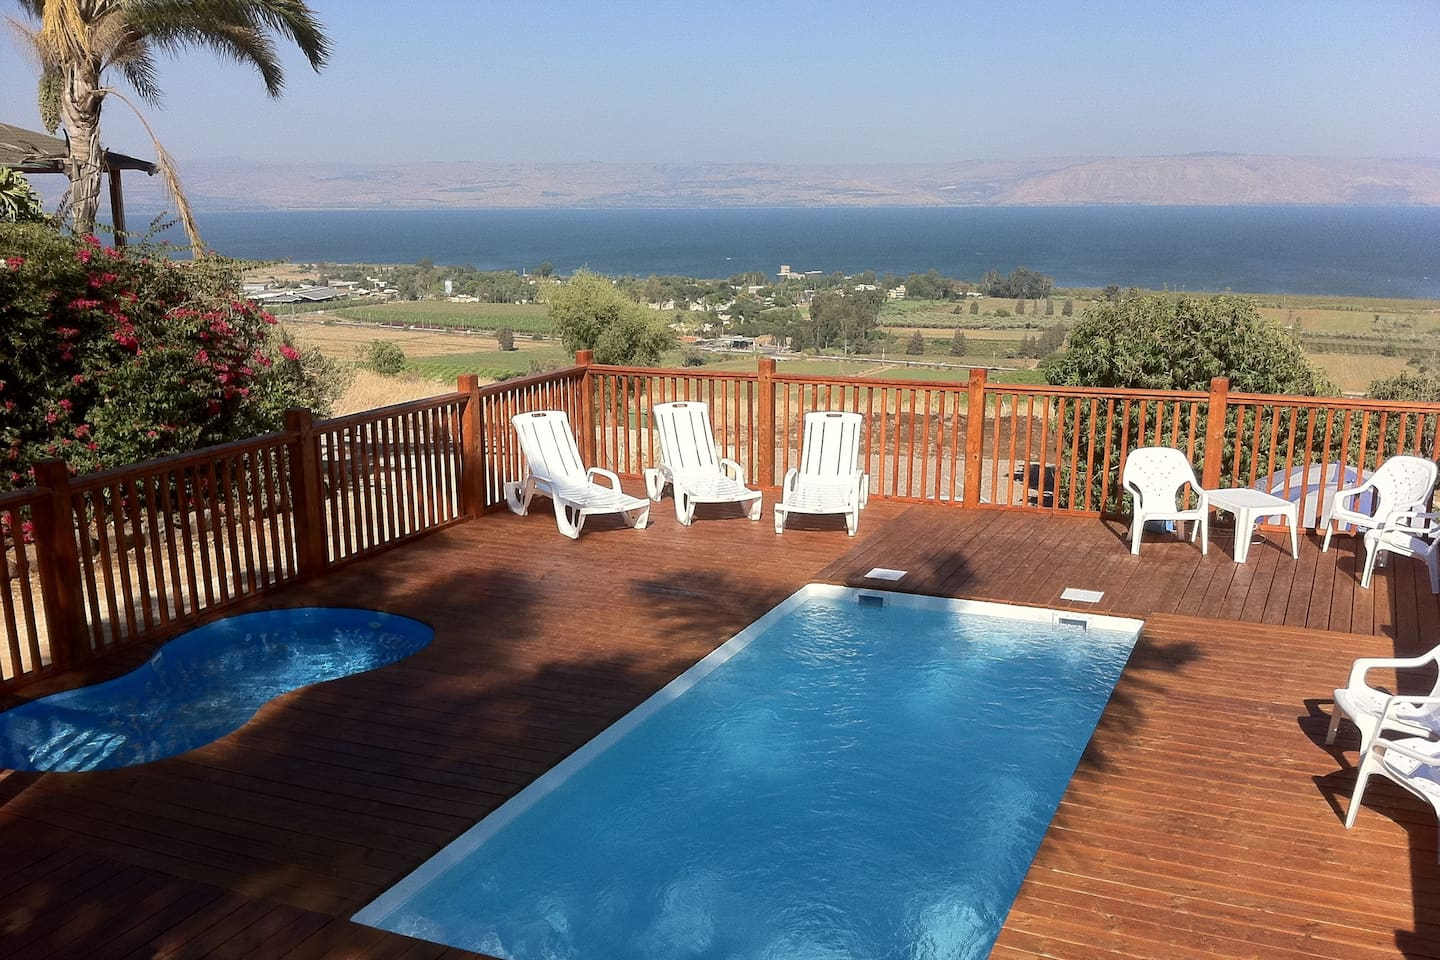 Your pool and views to the Sea of Gallilee